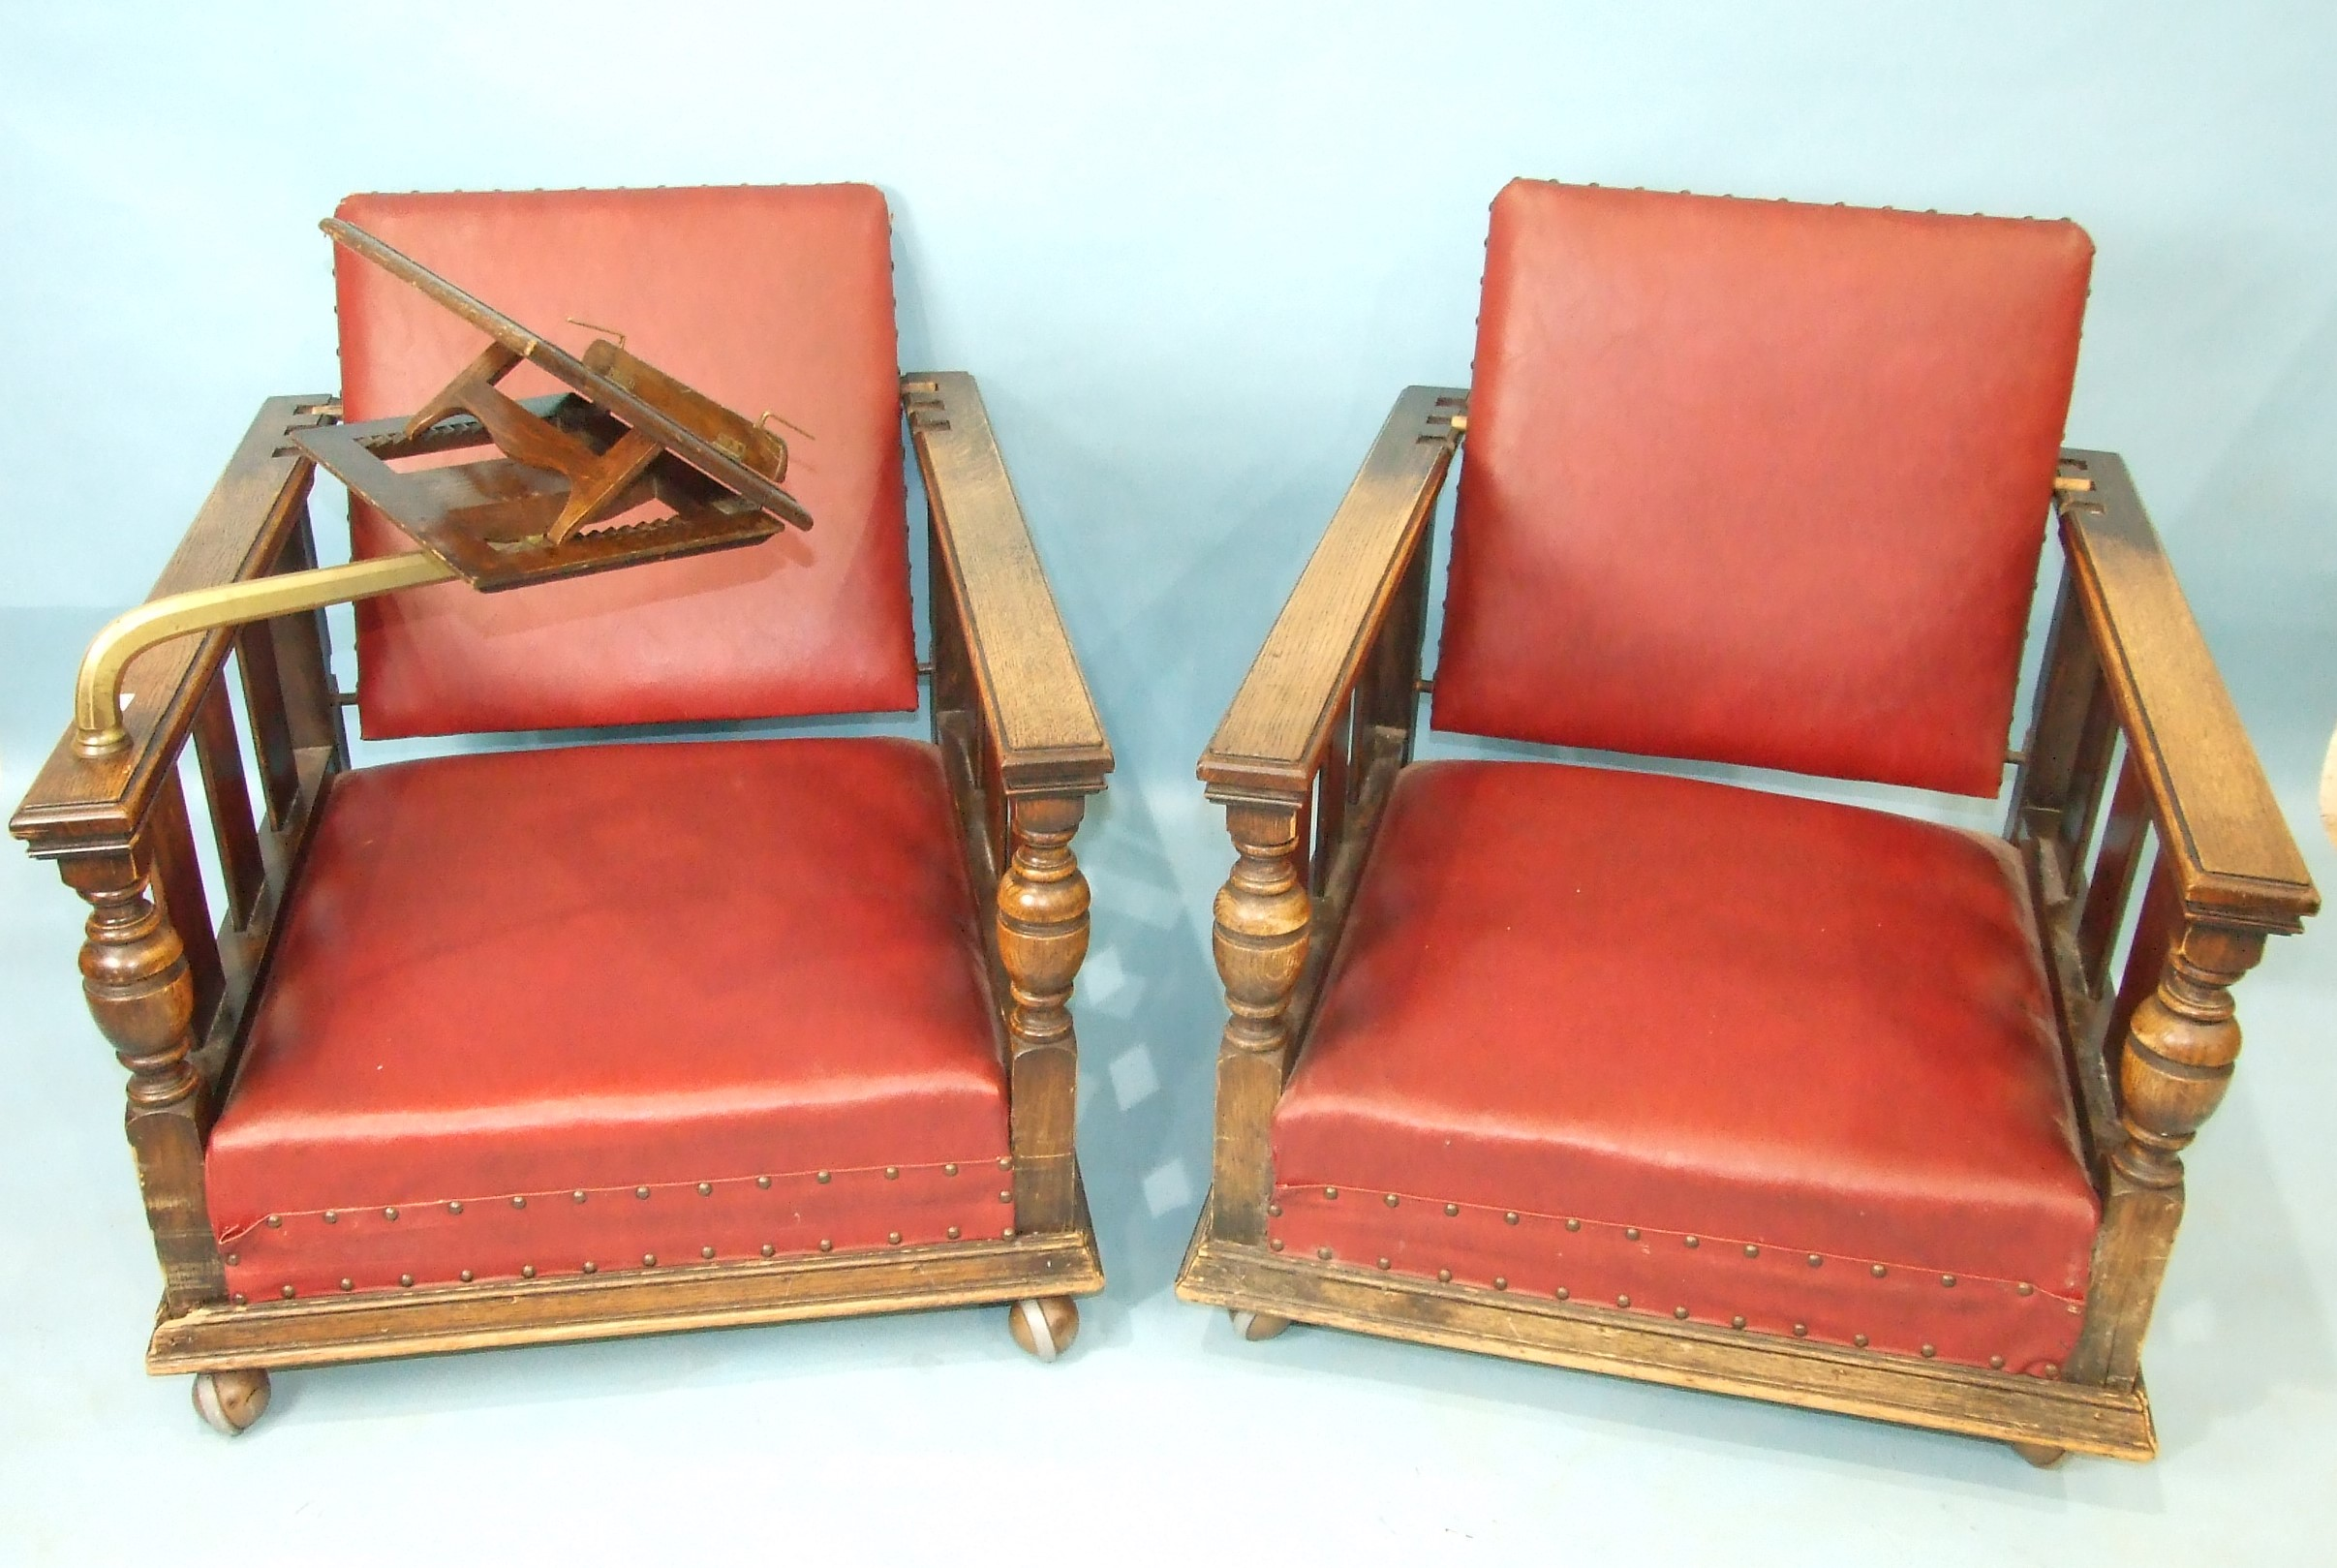 A pair of 1930's oak deep-seated armchairs with adjustable backs, on later castors, one with